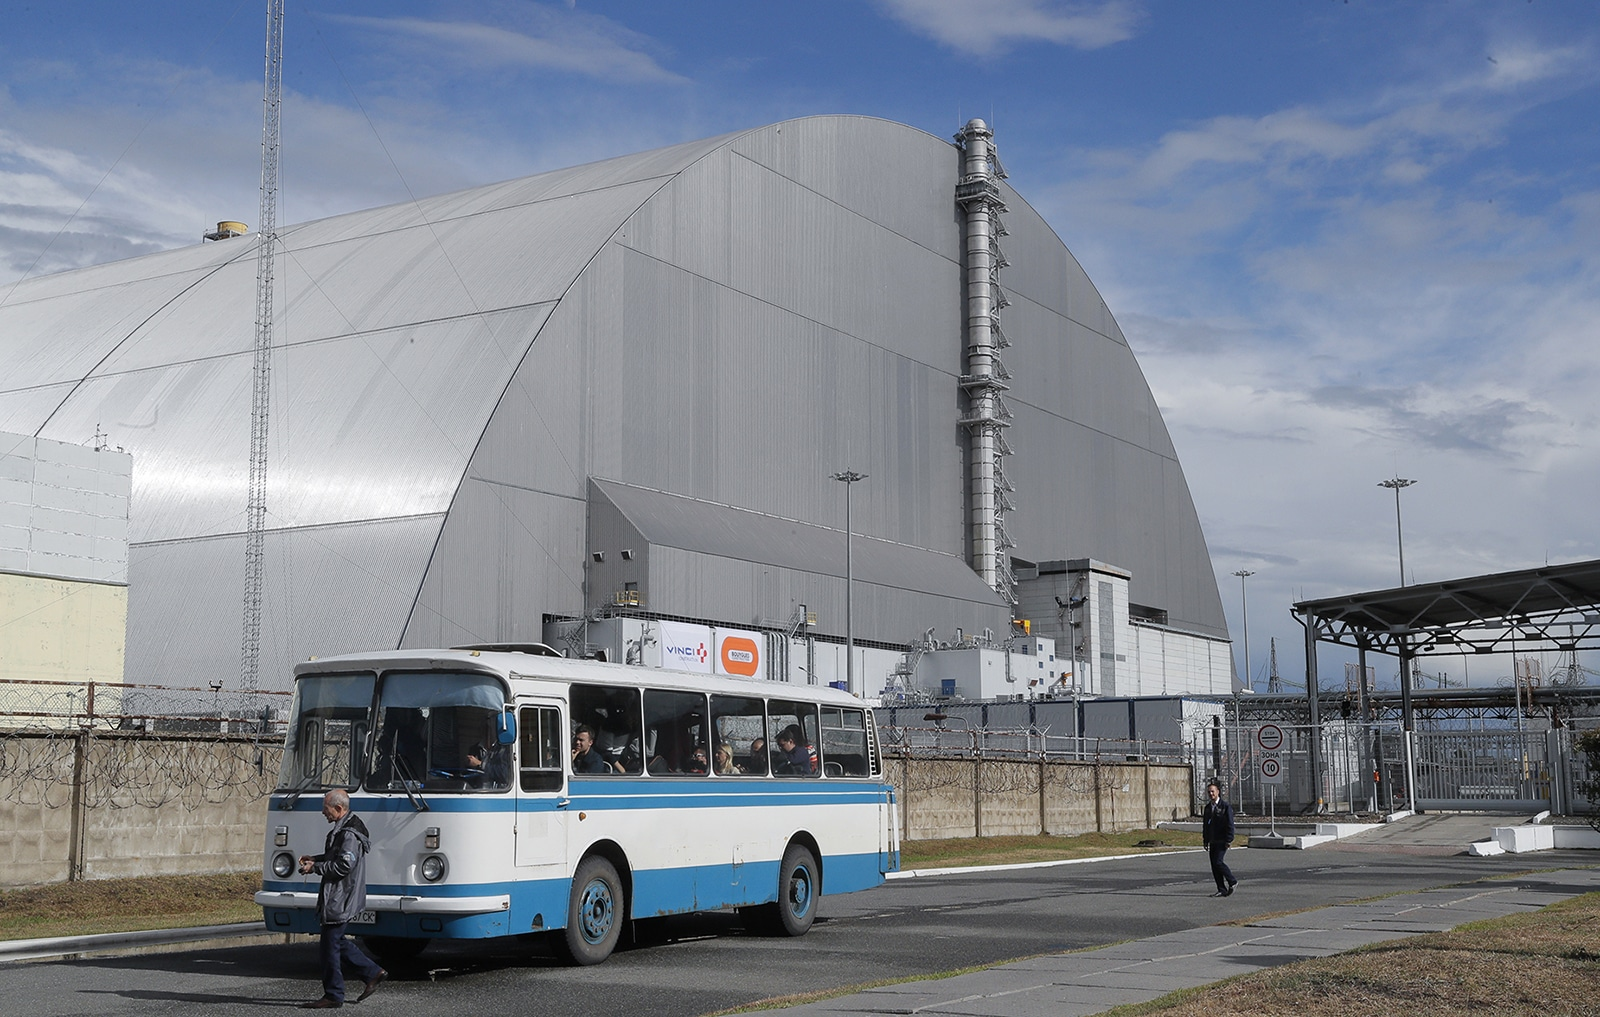 Chernobyl New Safe Confinement Concluded New Europe